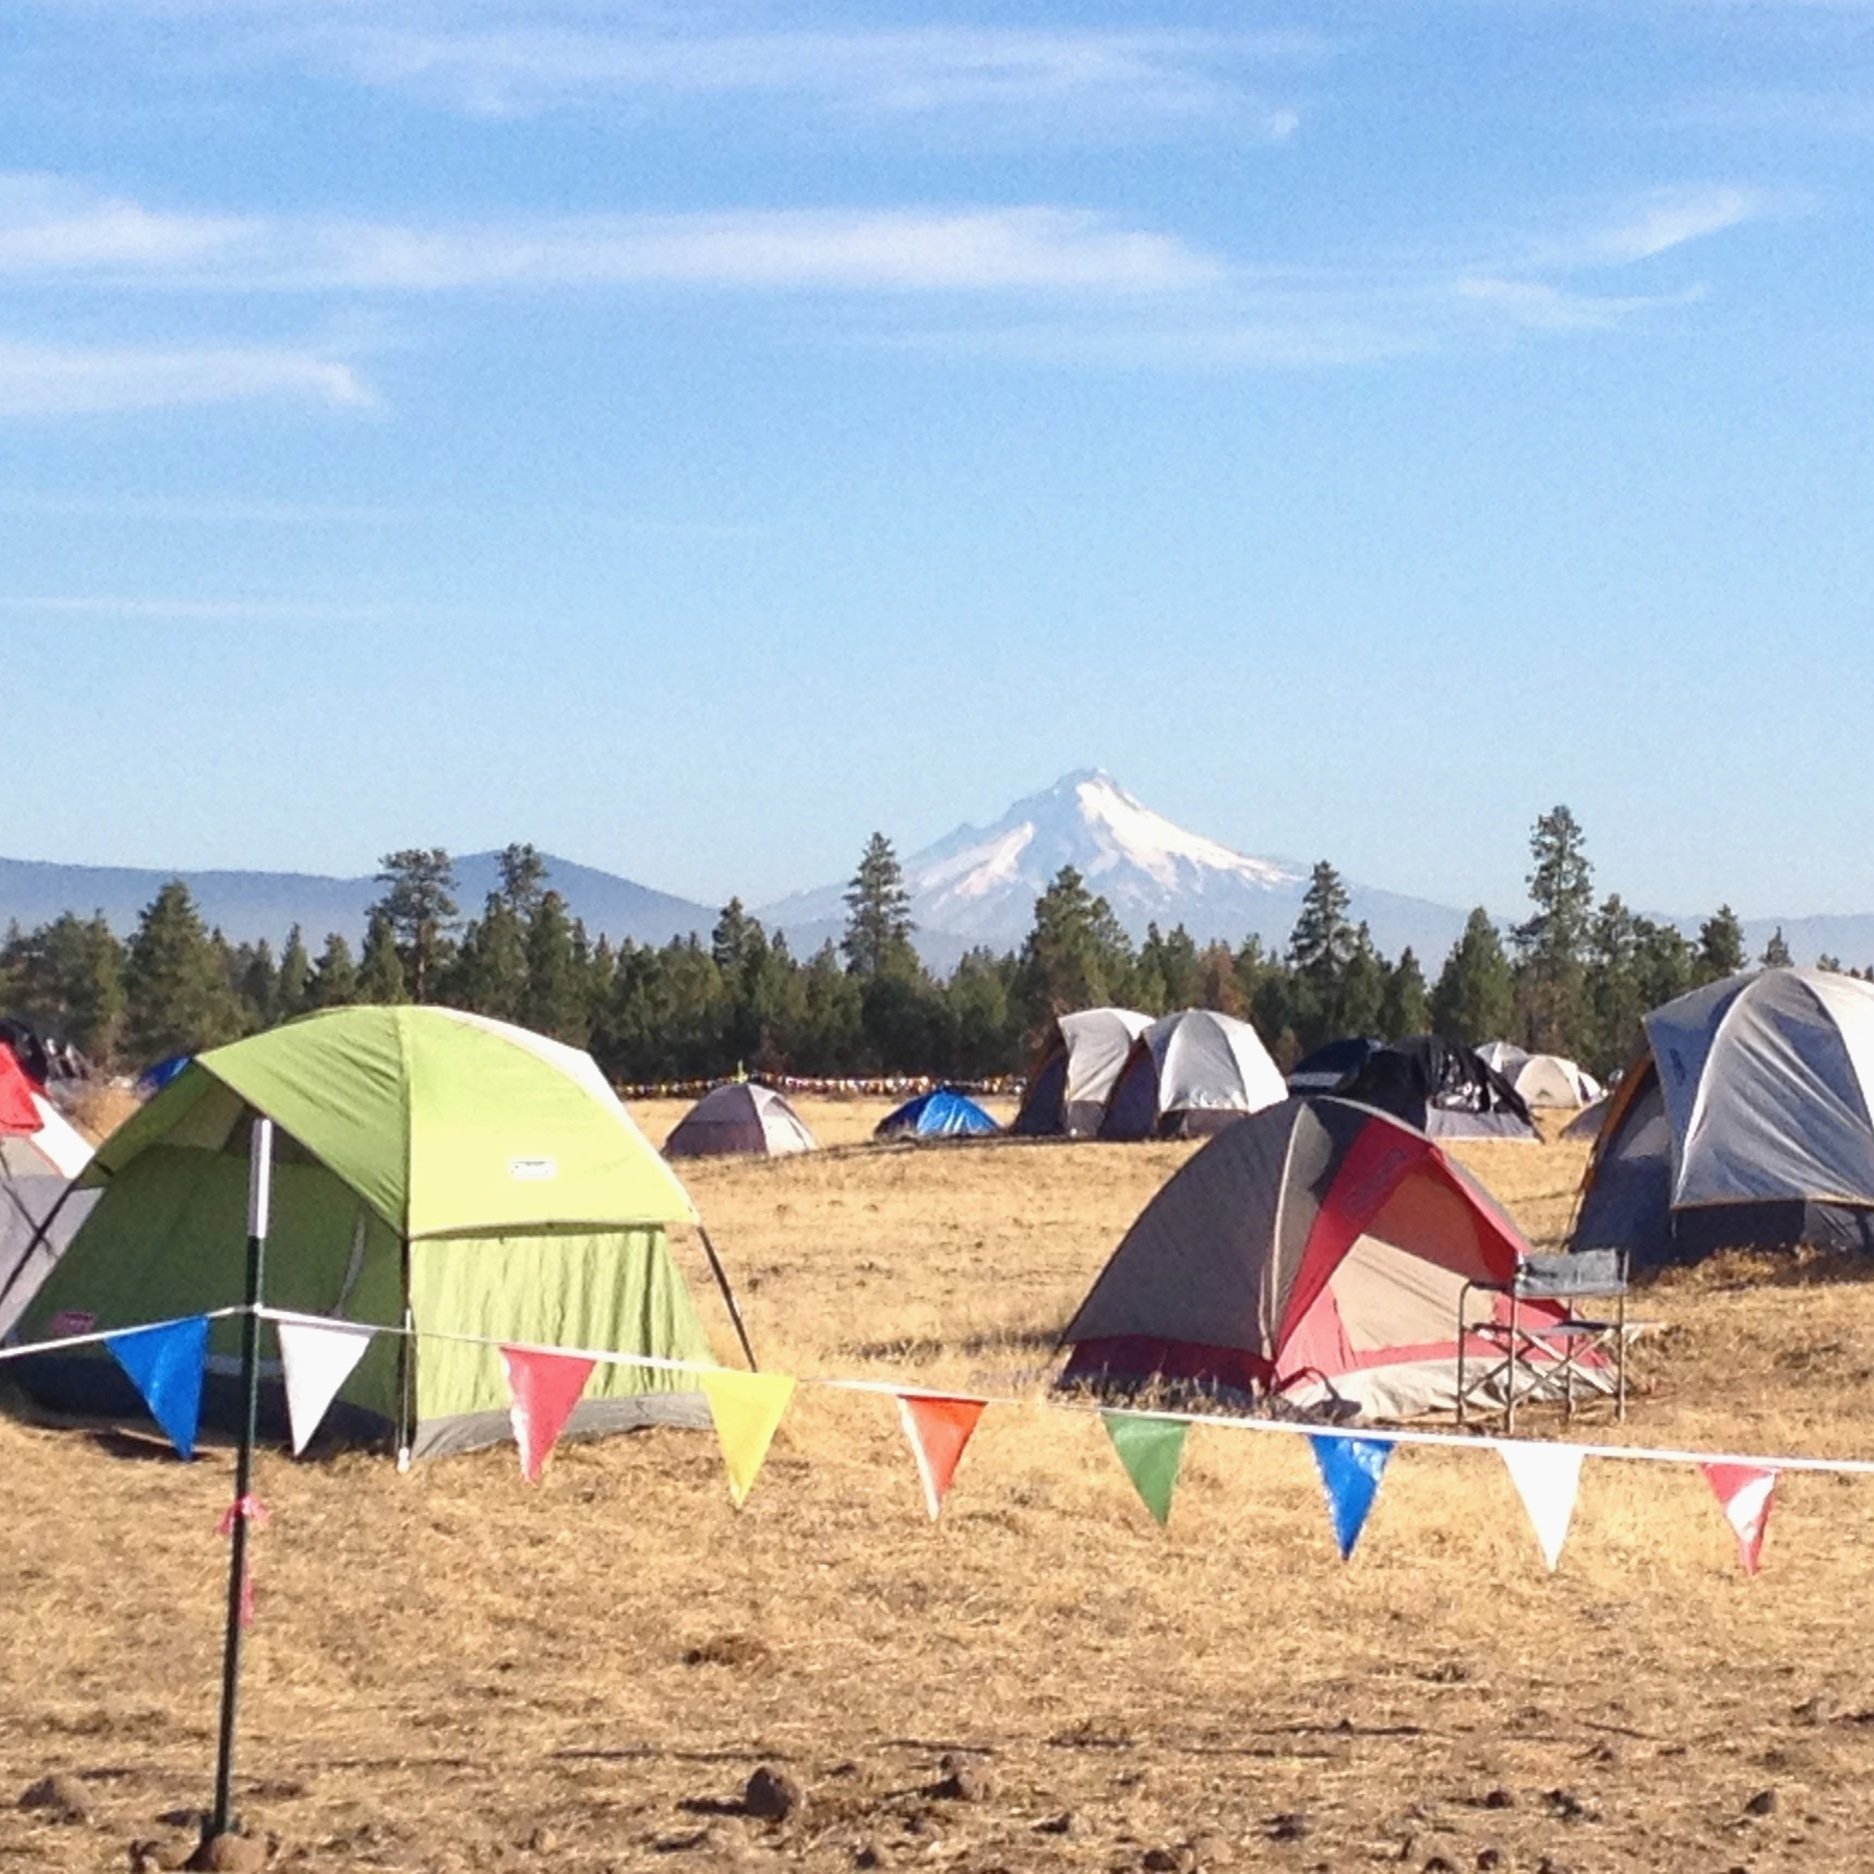 Main fire camp of a fire in Oregon in 2014. Fire positions that are camp based like logistics, medical, leadership, communications, or food tent, among others, generally keep their tents up the entire time they are on a roll. Wildland firefighters out on the fireline pack everything up before they start work because you never know what the fire will do and where you may need to go next.